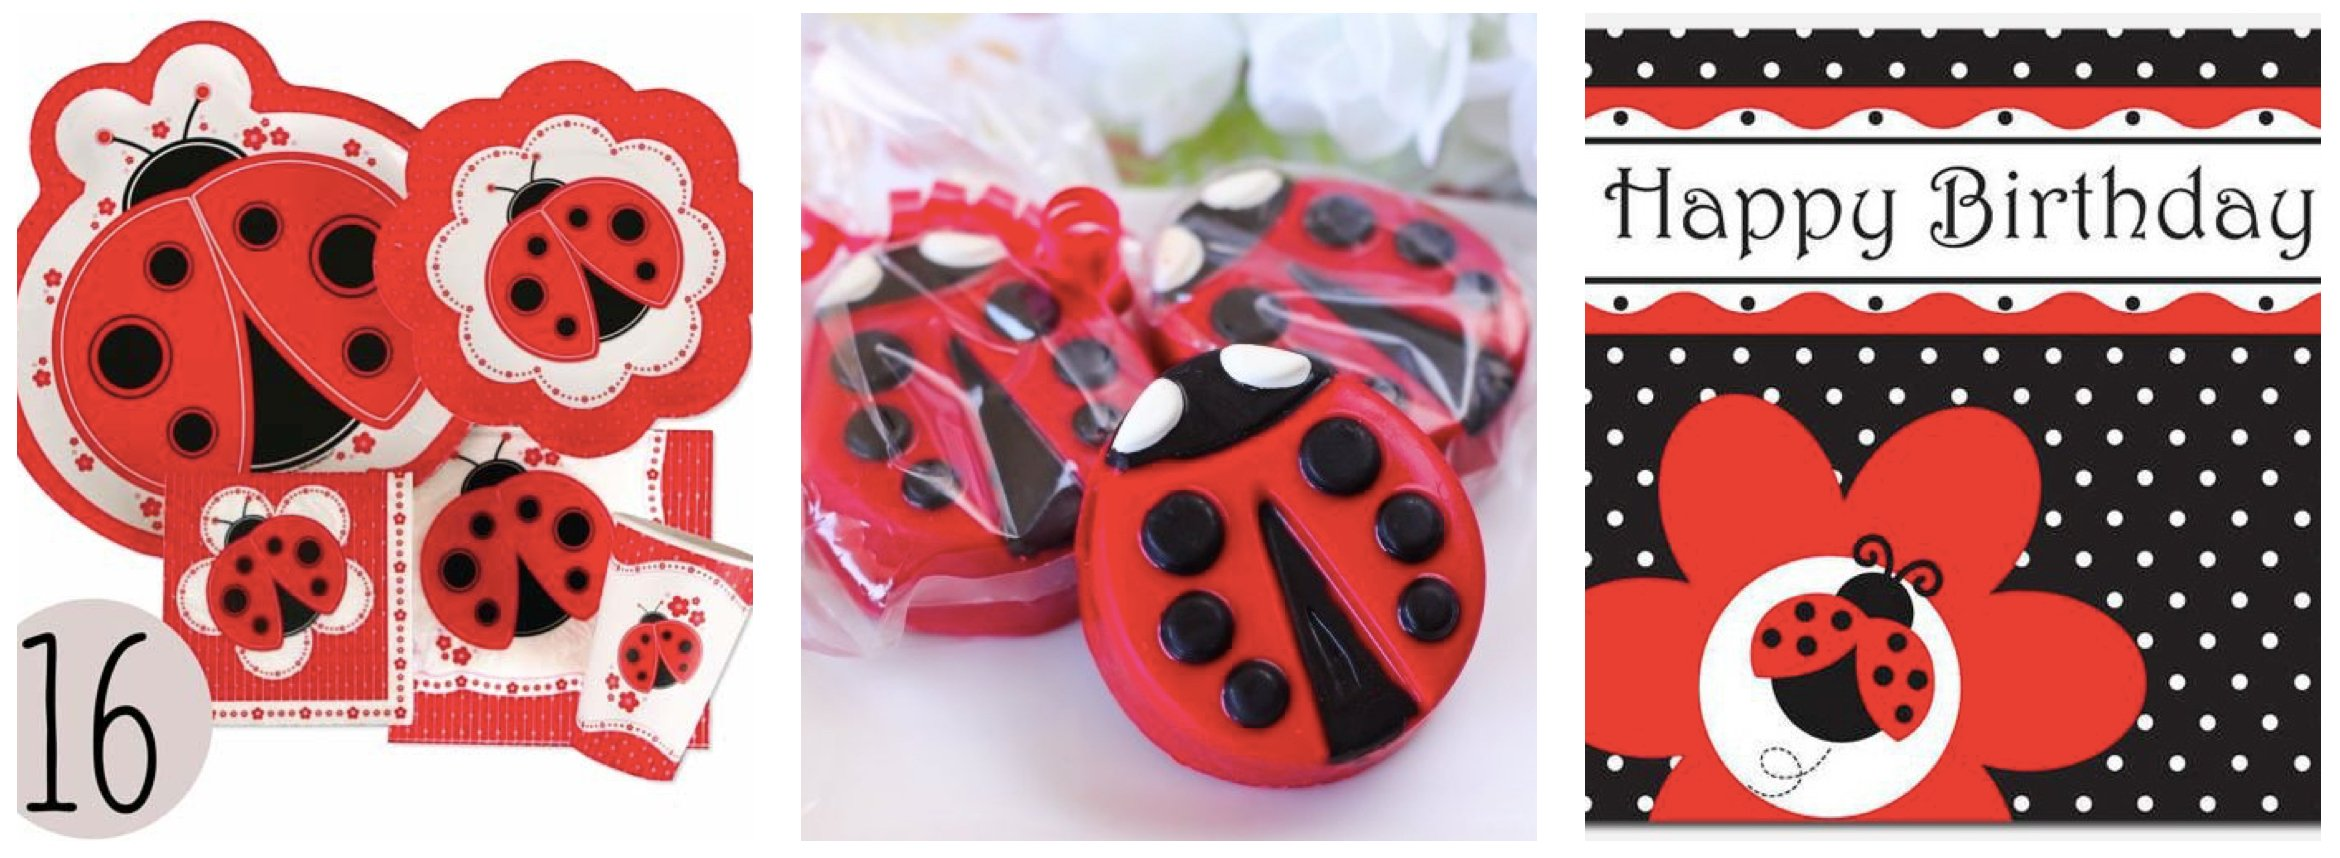 Lady Bug Polka Dot Party Supplies